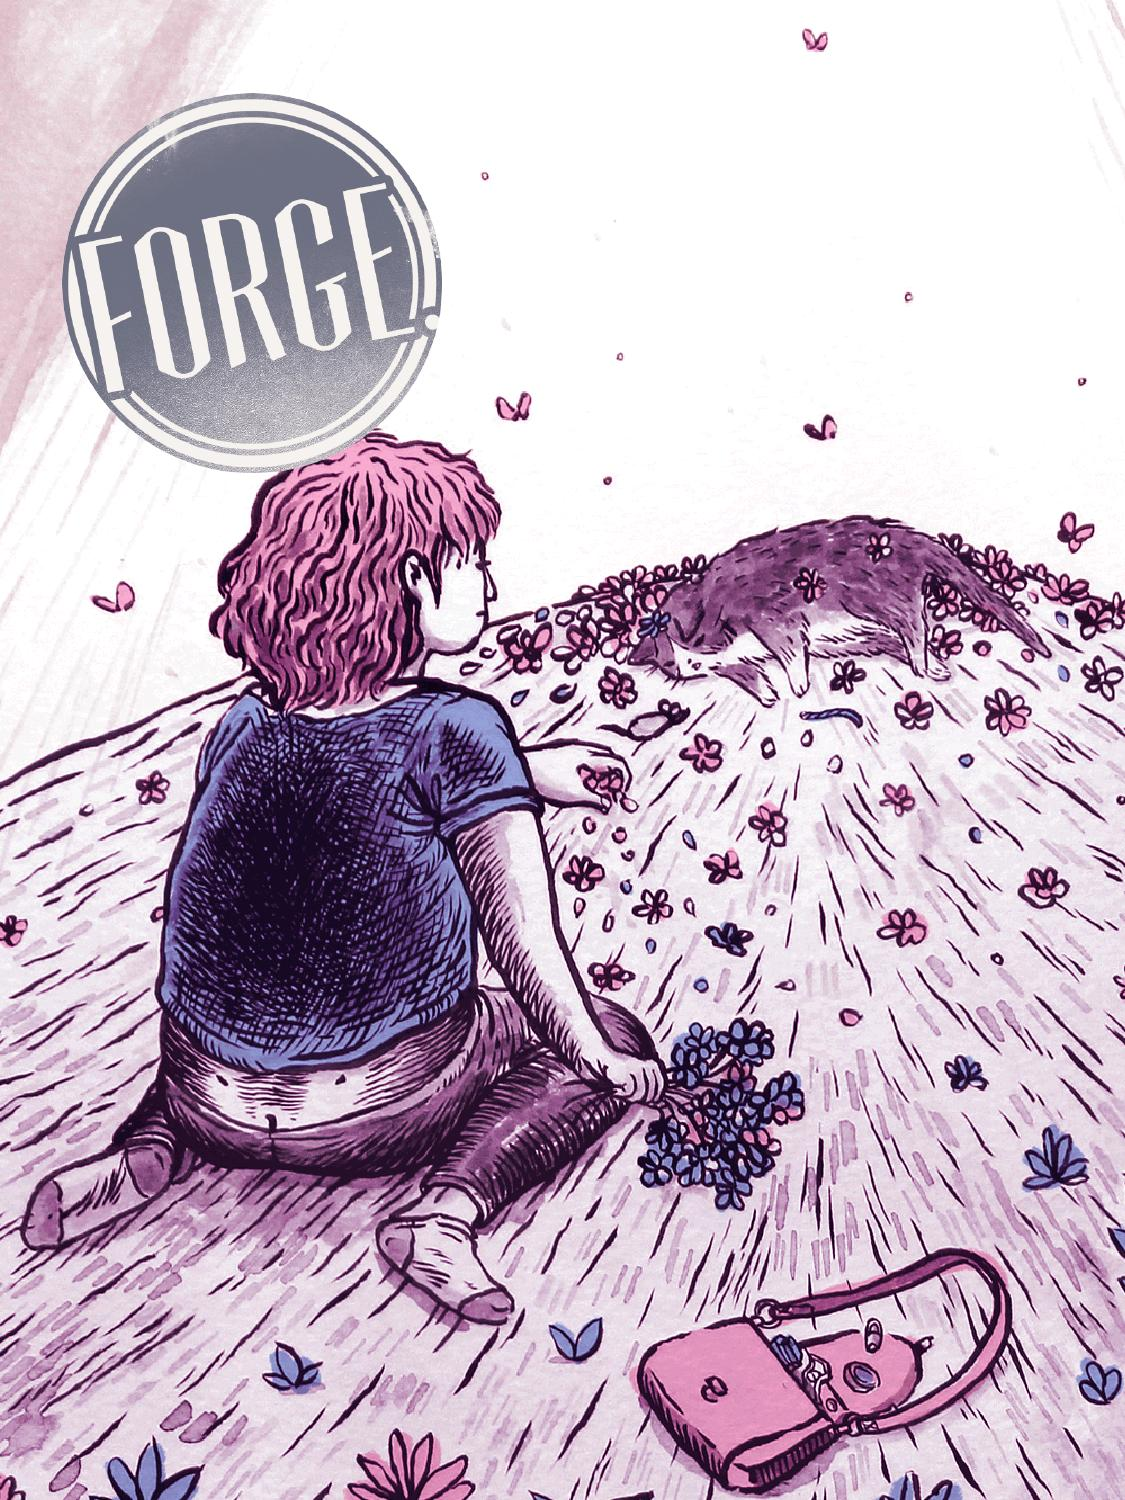 Forge Issue 11 Devotion By Forge Art Magazine Issuu